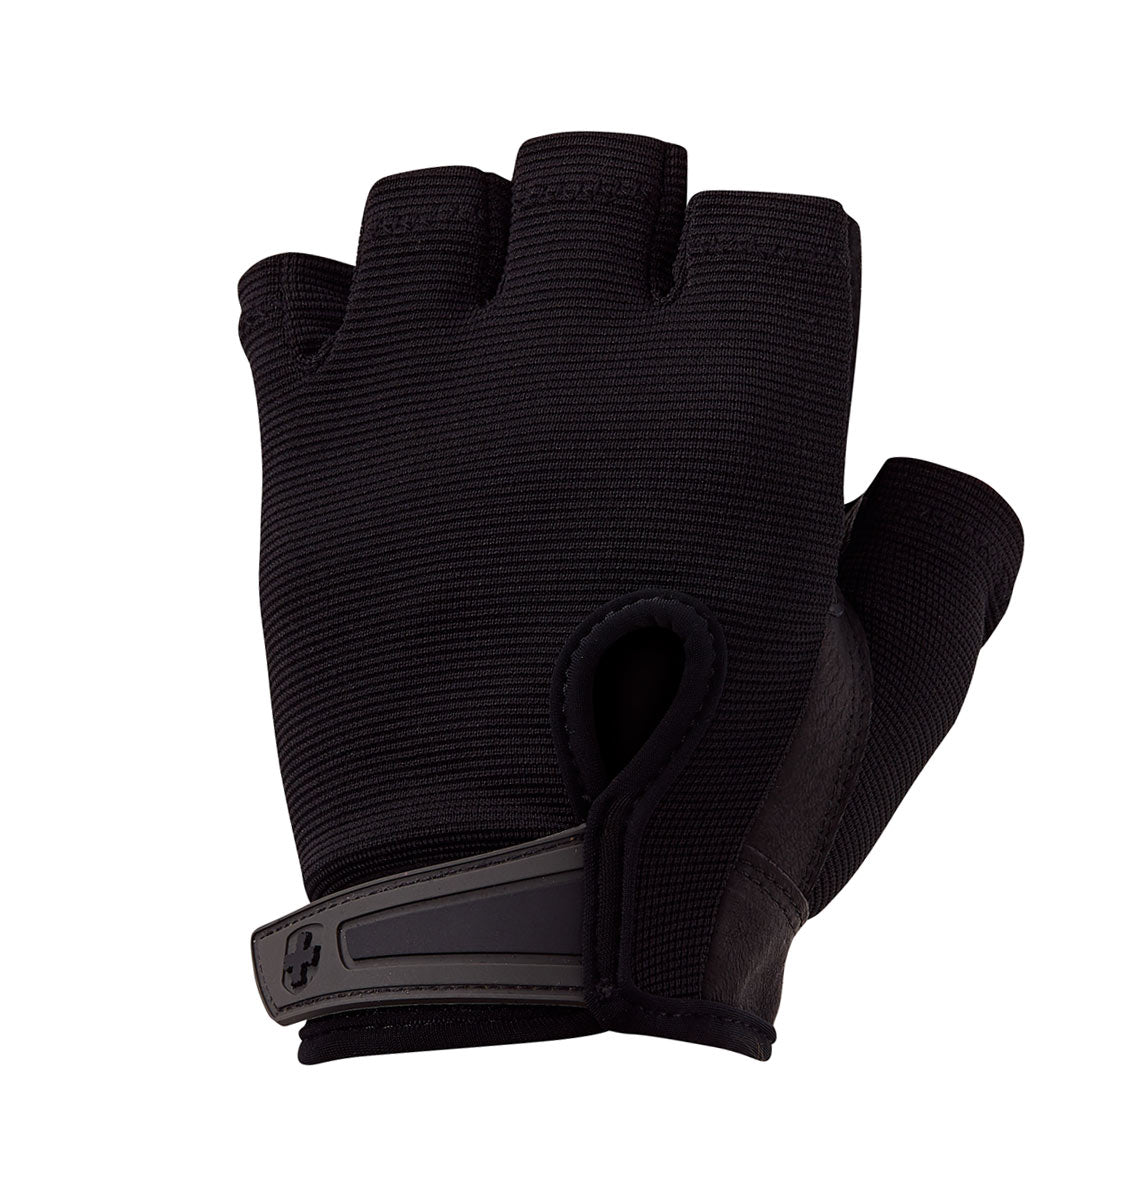 0155 Harbinger Power Series Mens Gym Gloves Left Top